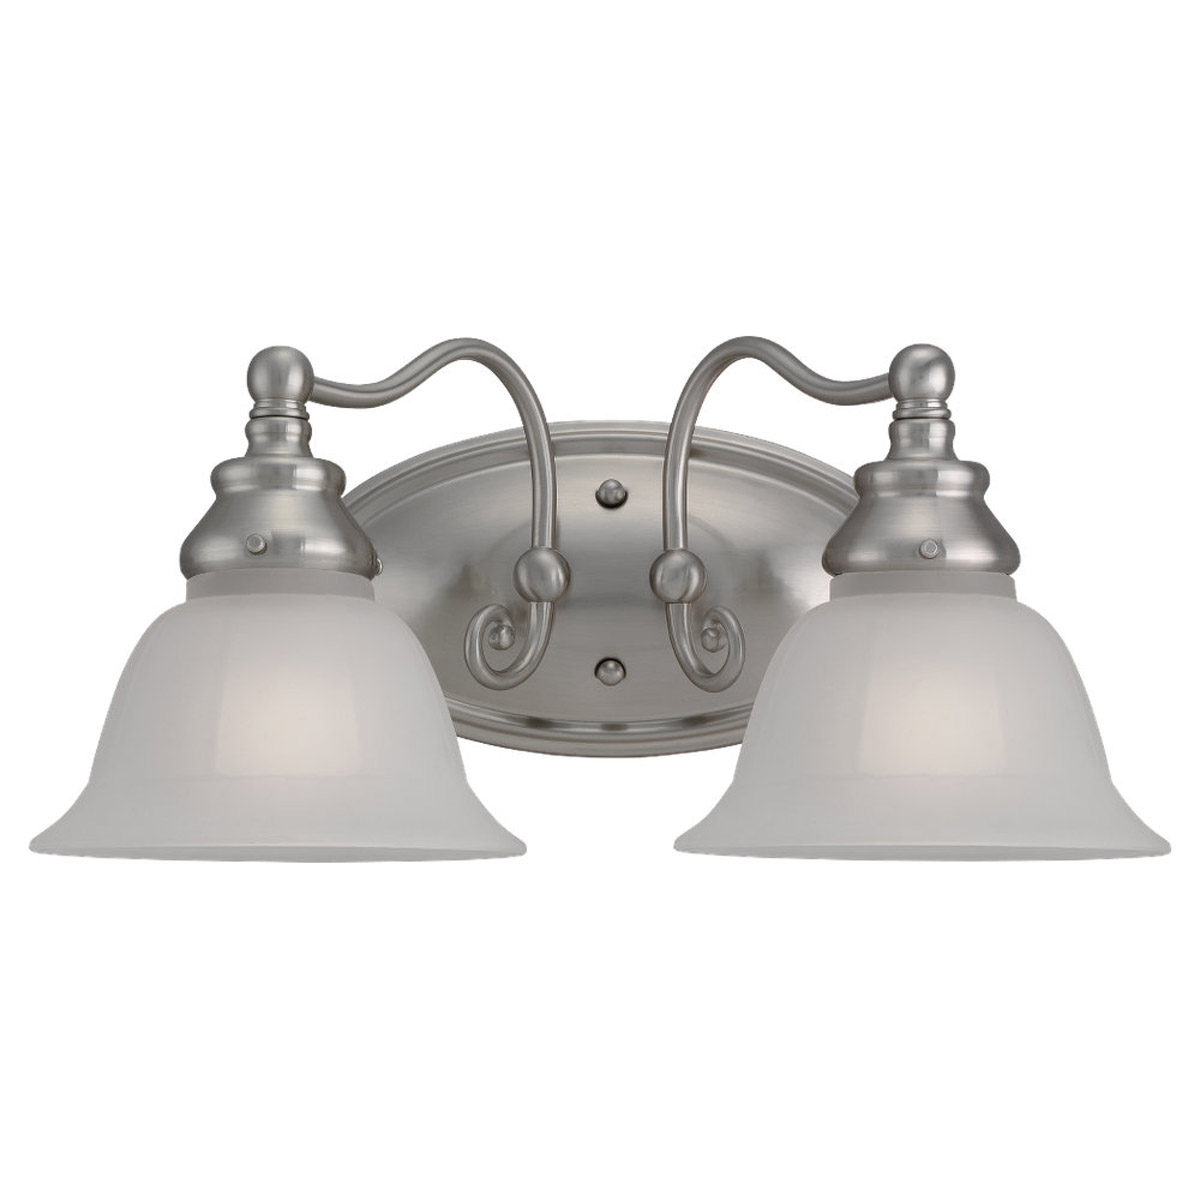 Sea Gull Lighting Canterbury 2 Light Bath Vanity in Brushed Nickel 44651-962